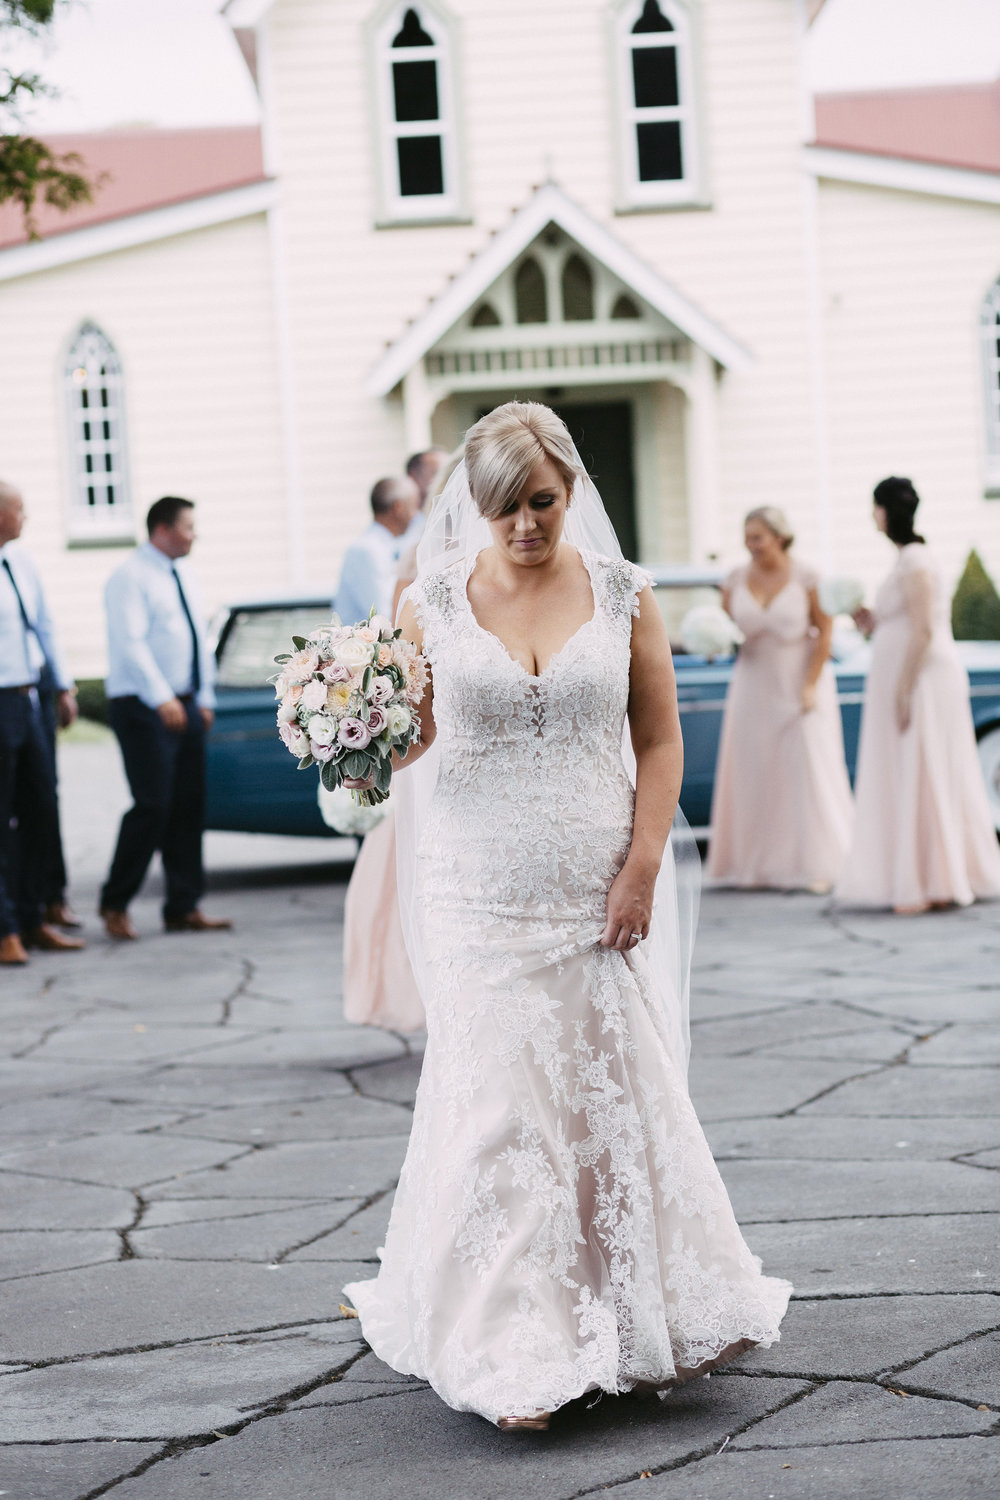 Melitta | Astra Bride Simone | Maggie Sottero Melitta | The Old Church Napier | Brad Boniface Photographer |